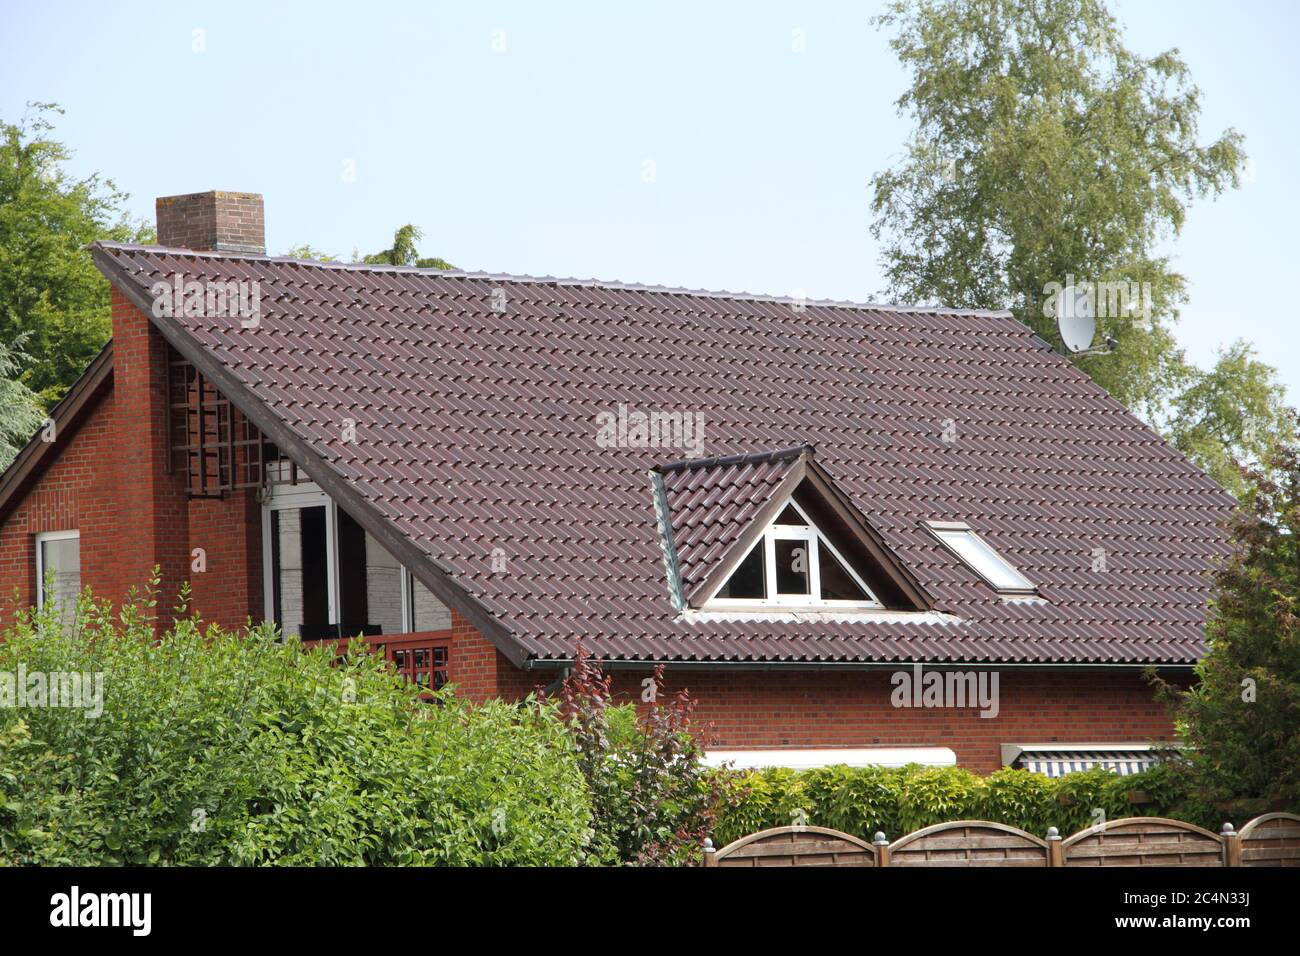 a dormer window on a newly roofed roof Stock Photo